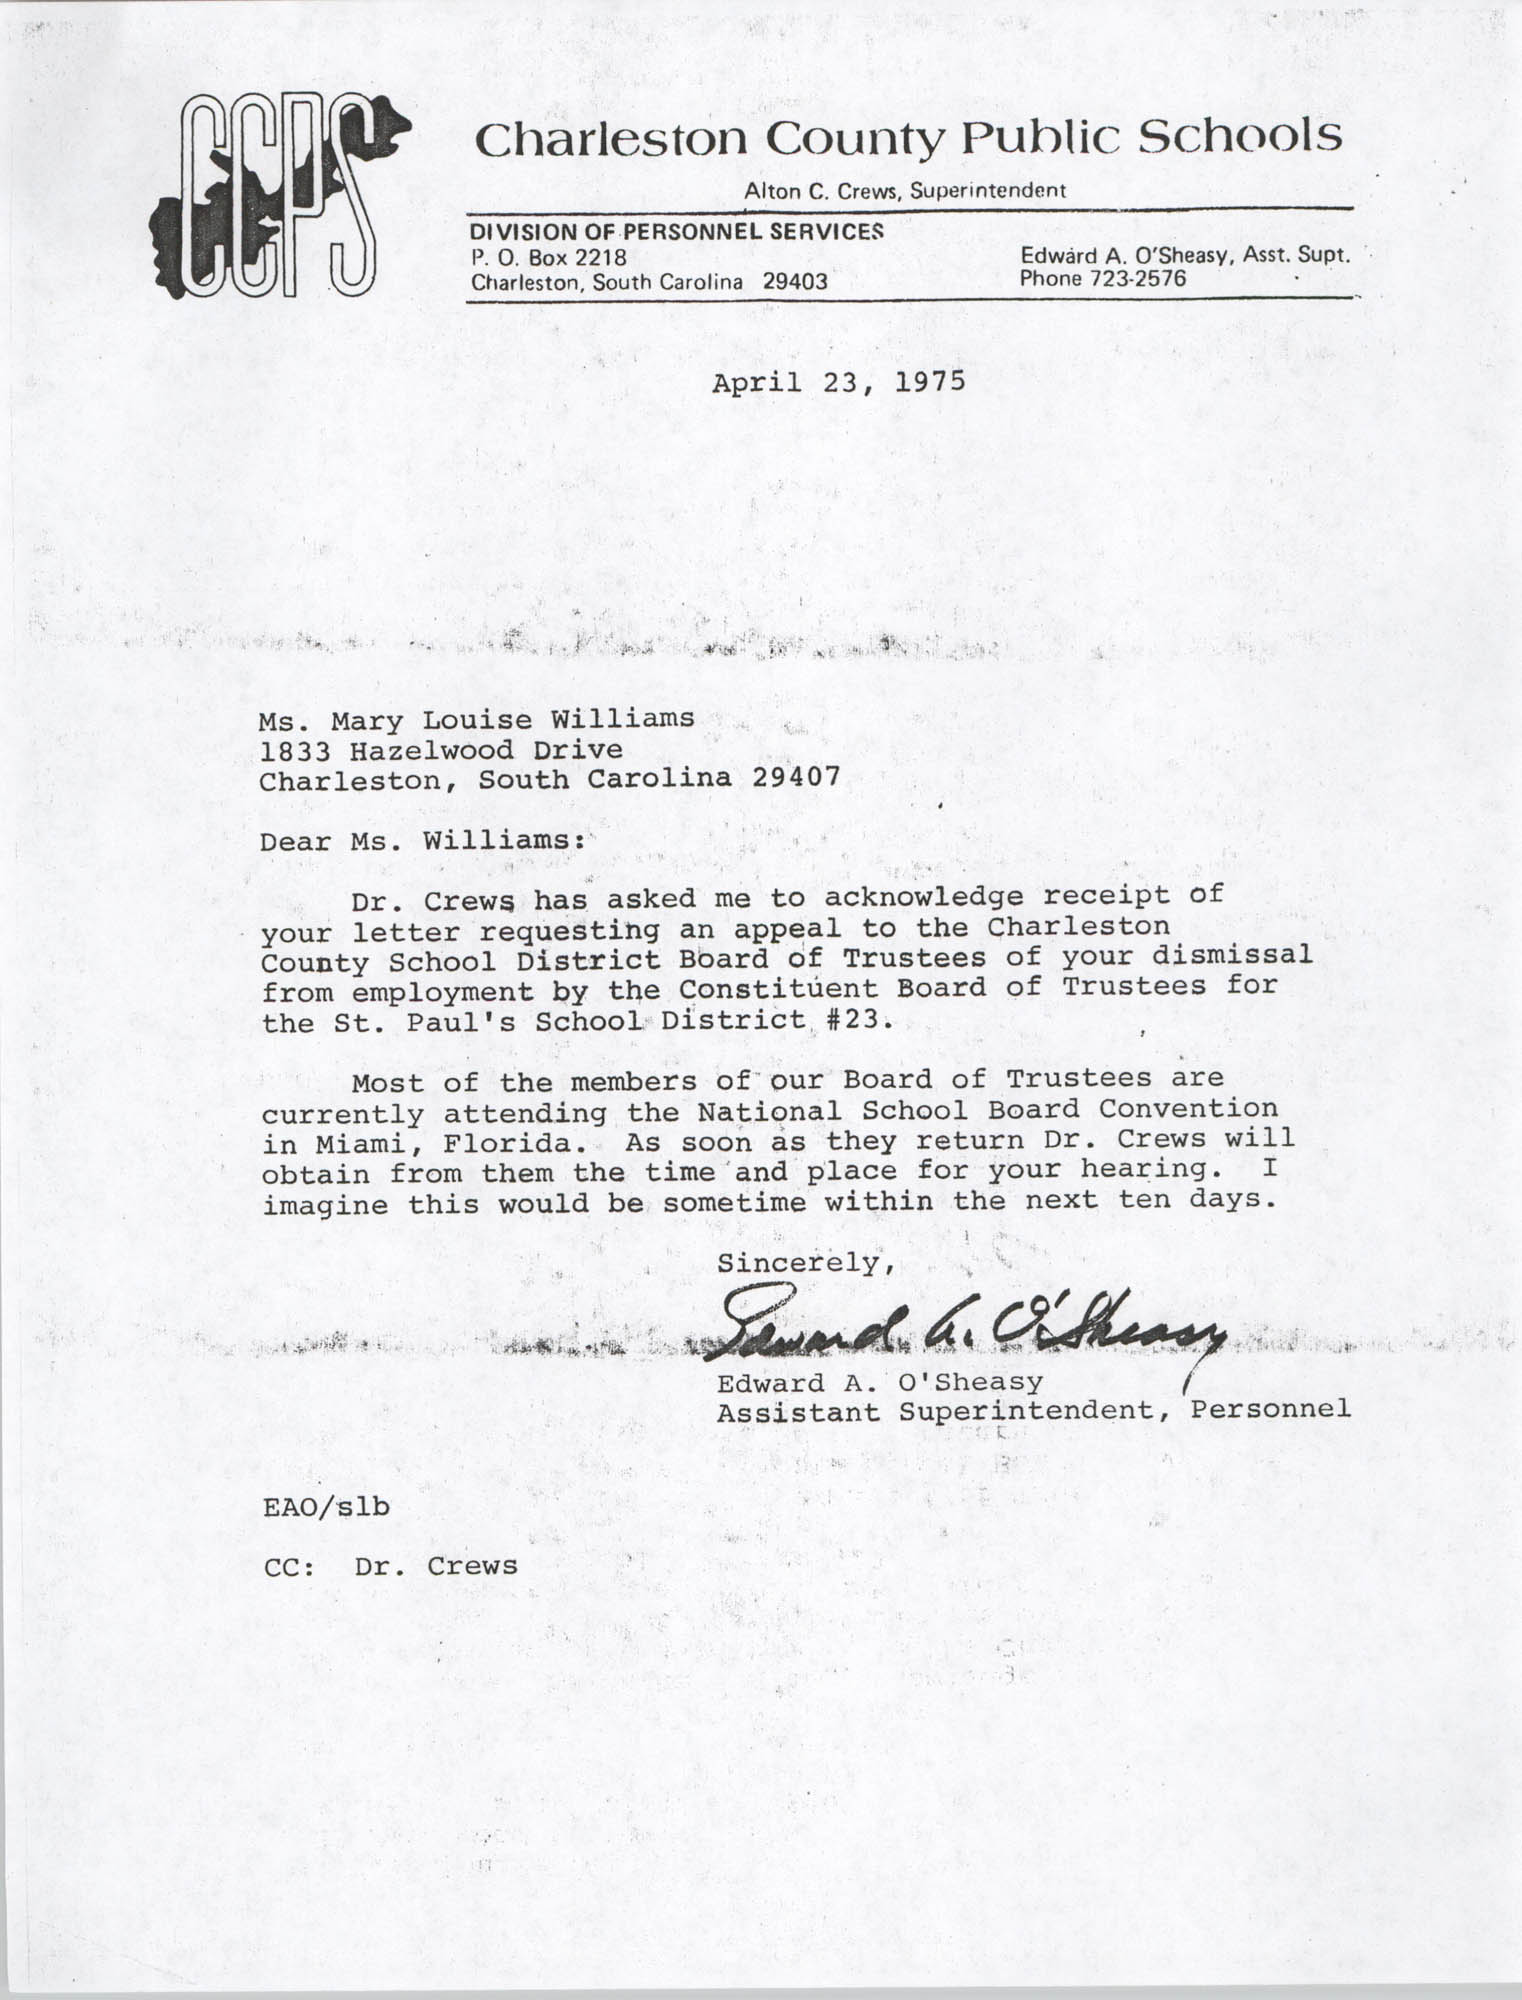 Letter from Edward A. O'Sheasy to Mary L. Williams, April 23, 1975